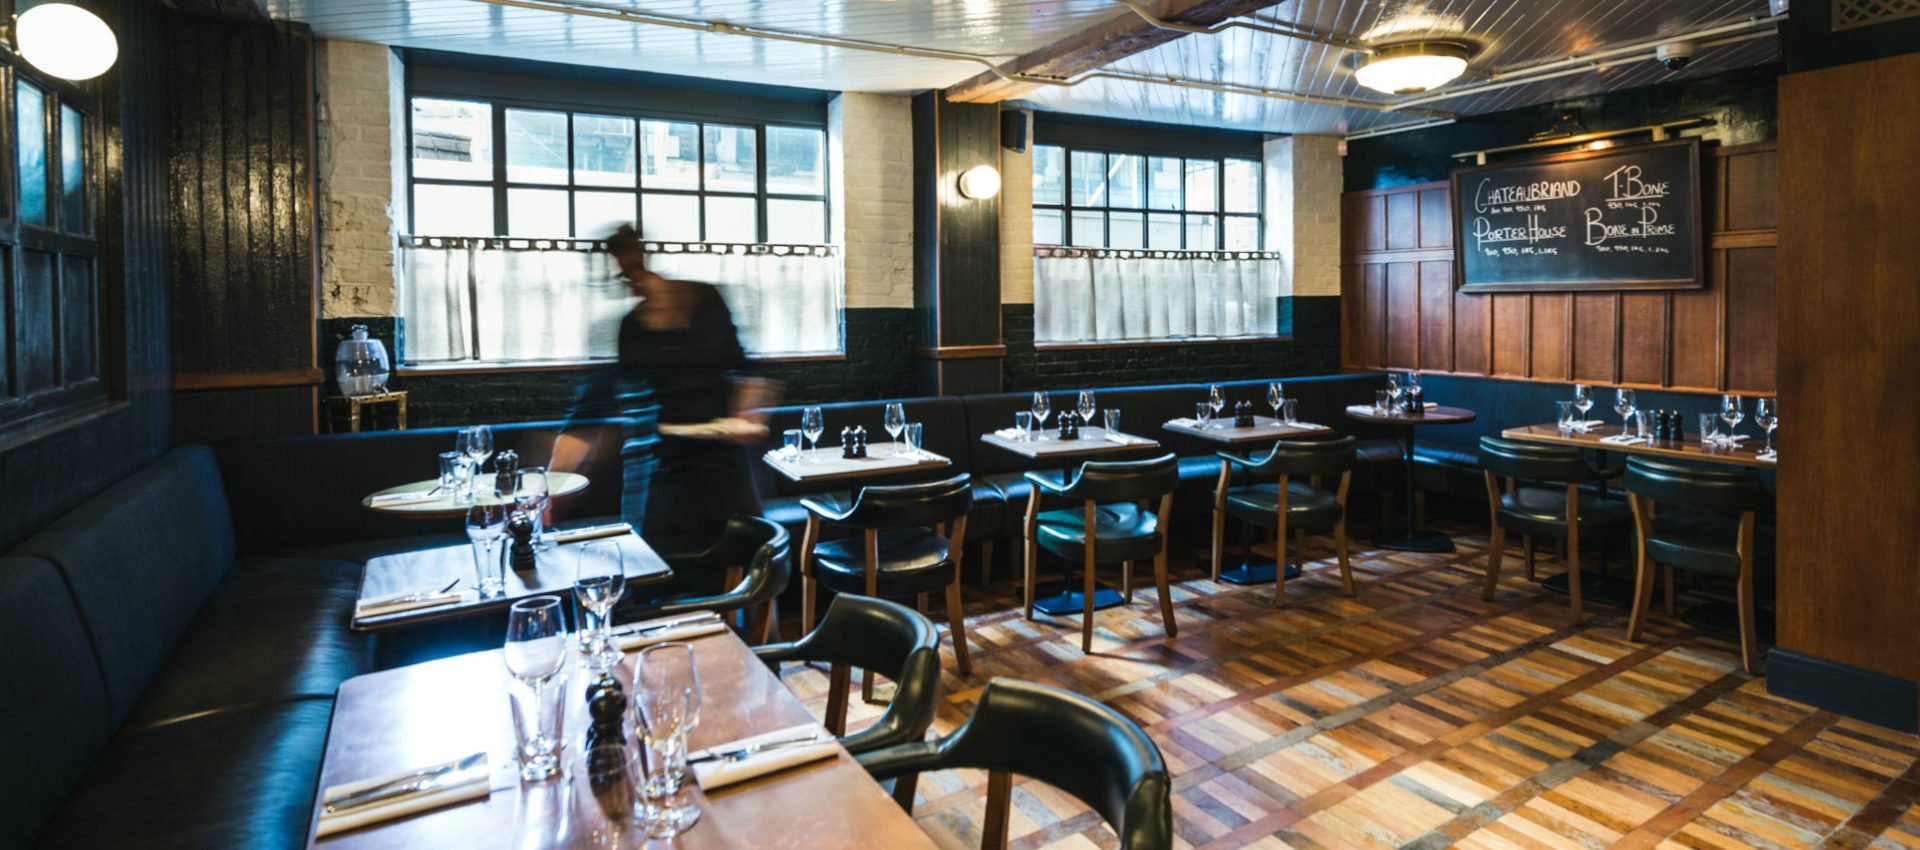 Hawksmoor Borough Market Celebrated South London Steak Spot